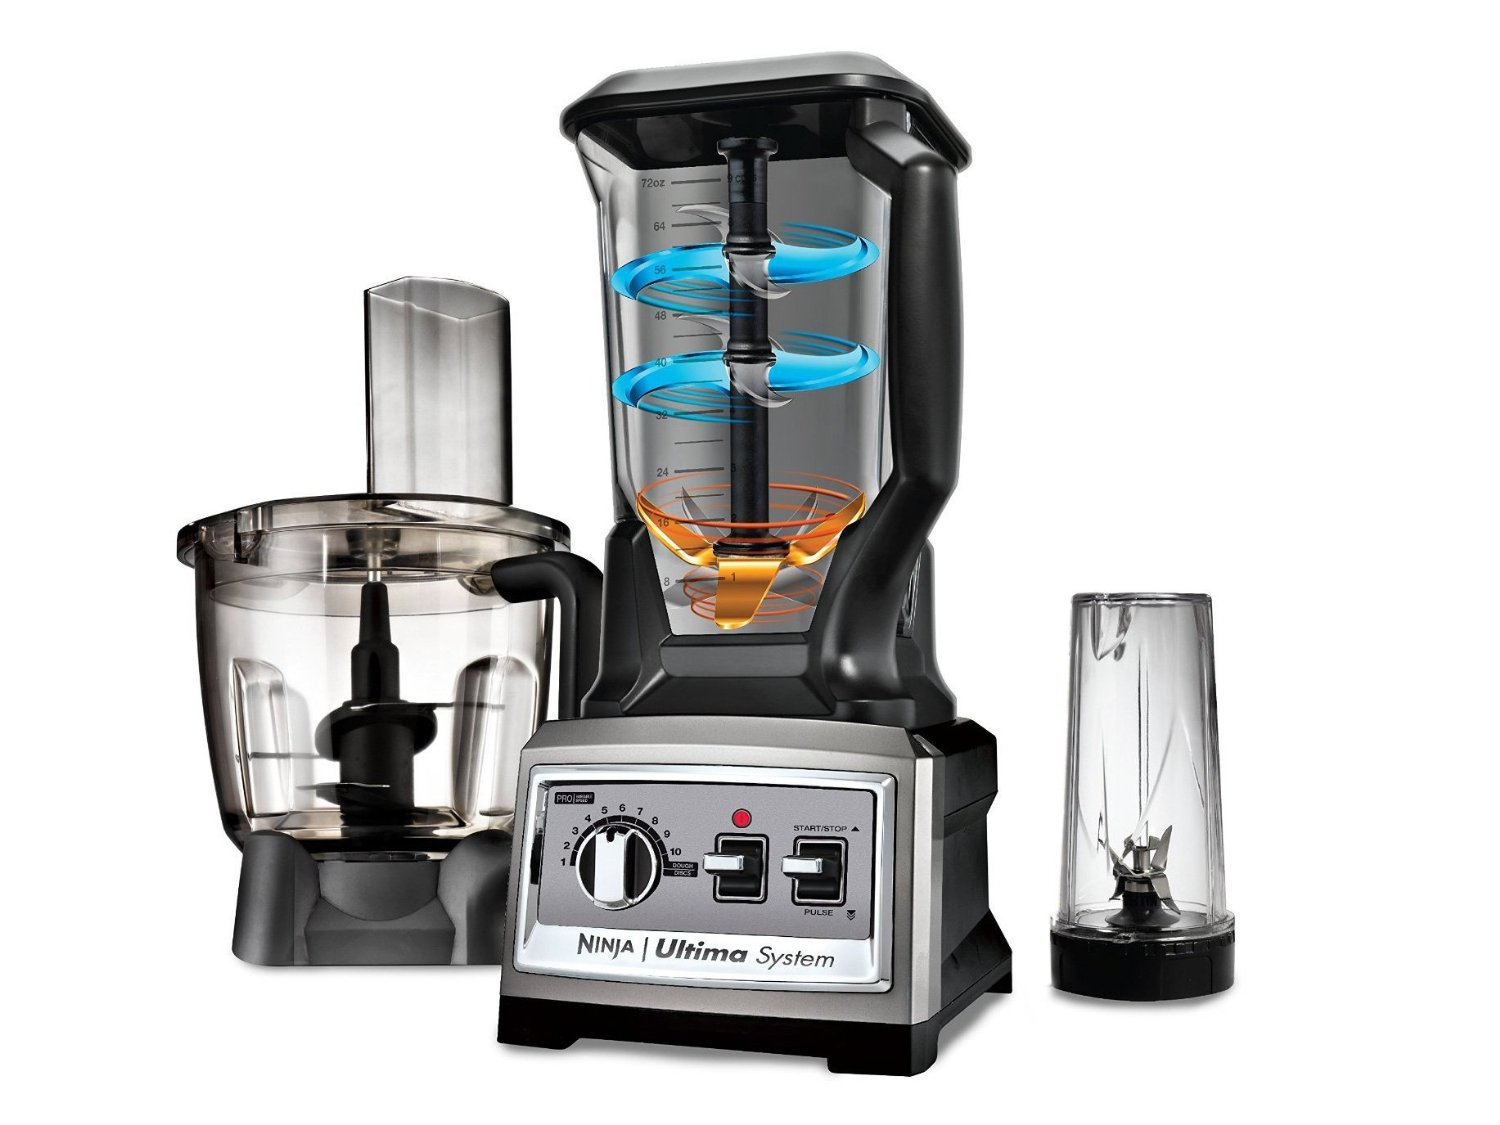 55% Off - Select Certified Refurbished Ninja Kitchen Systems